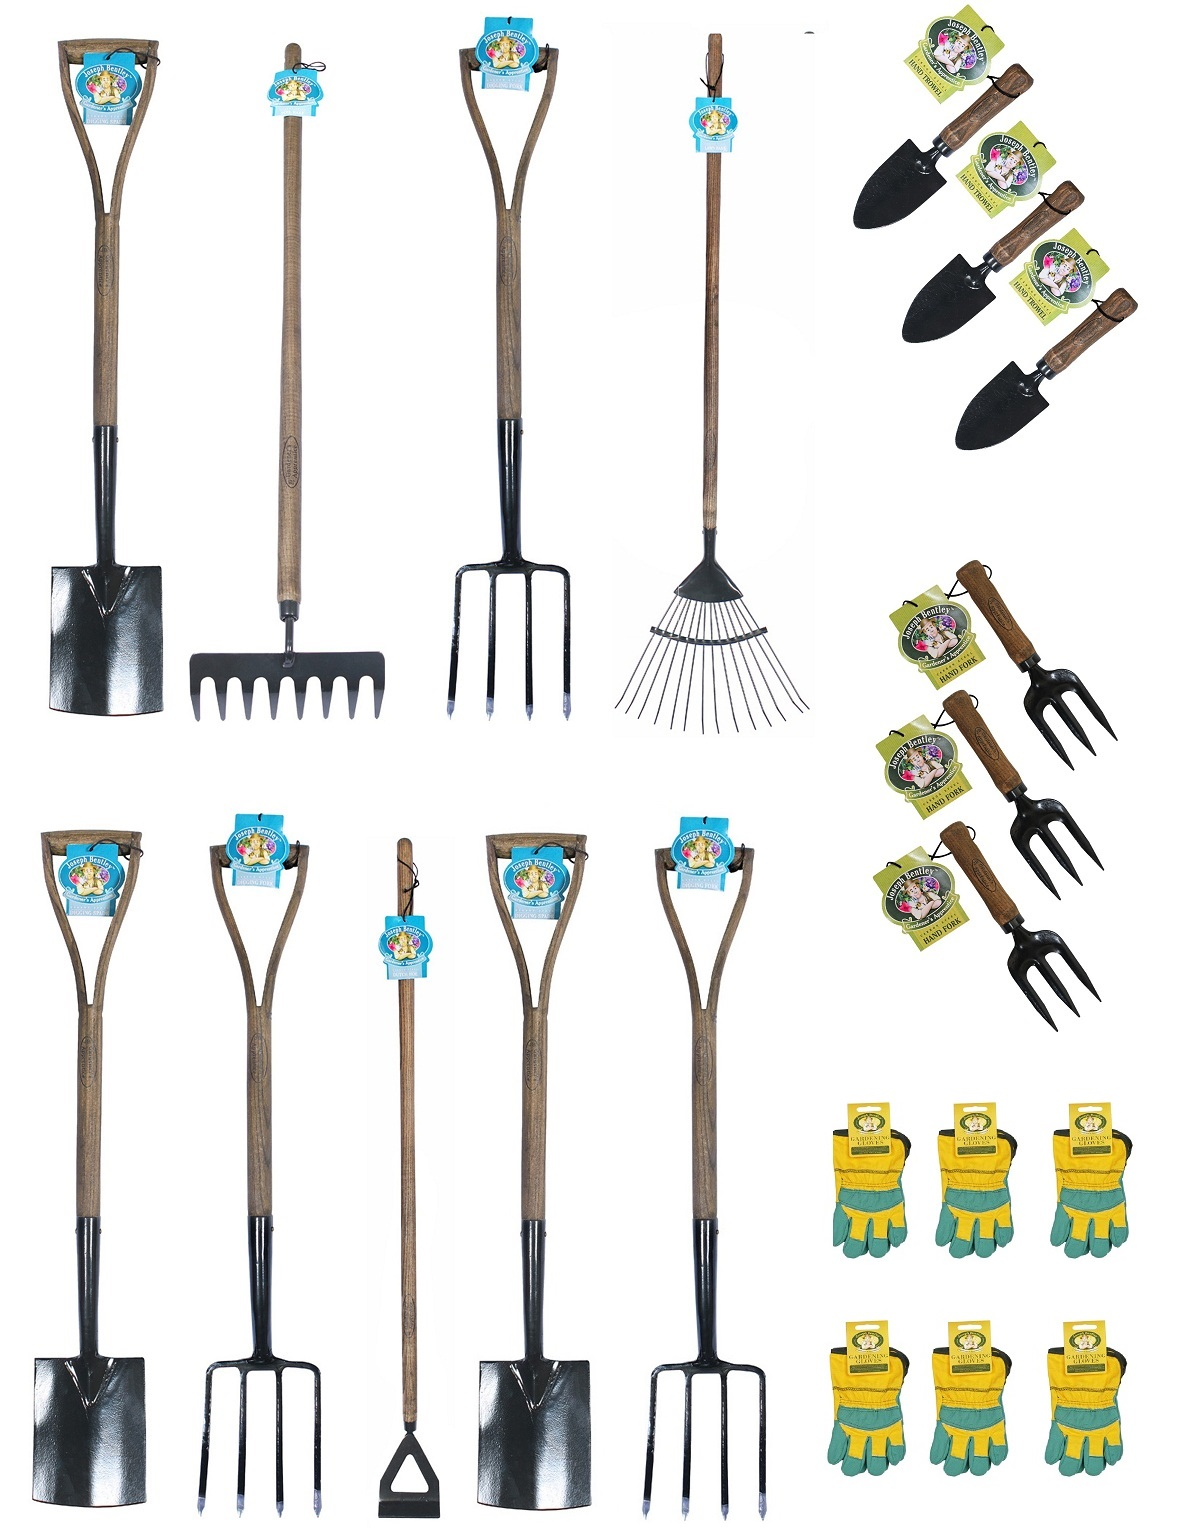 School Gardening Tools for Older Children Set 2. Tools Used For Gardening